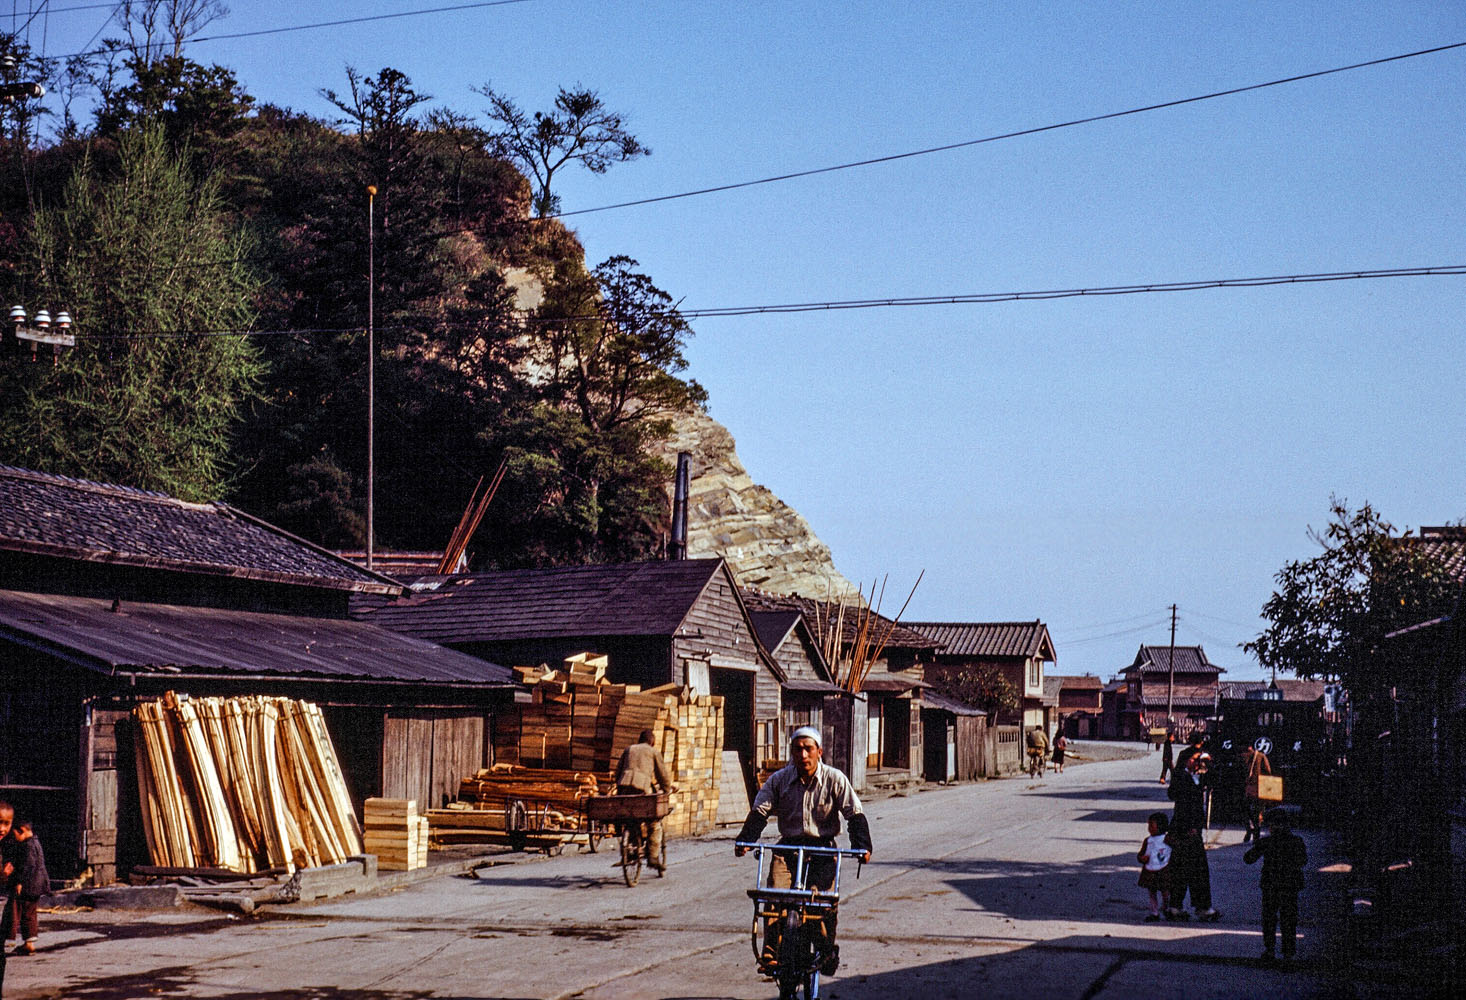 426- Near the Kyukitakami River, What are the buildings?